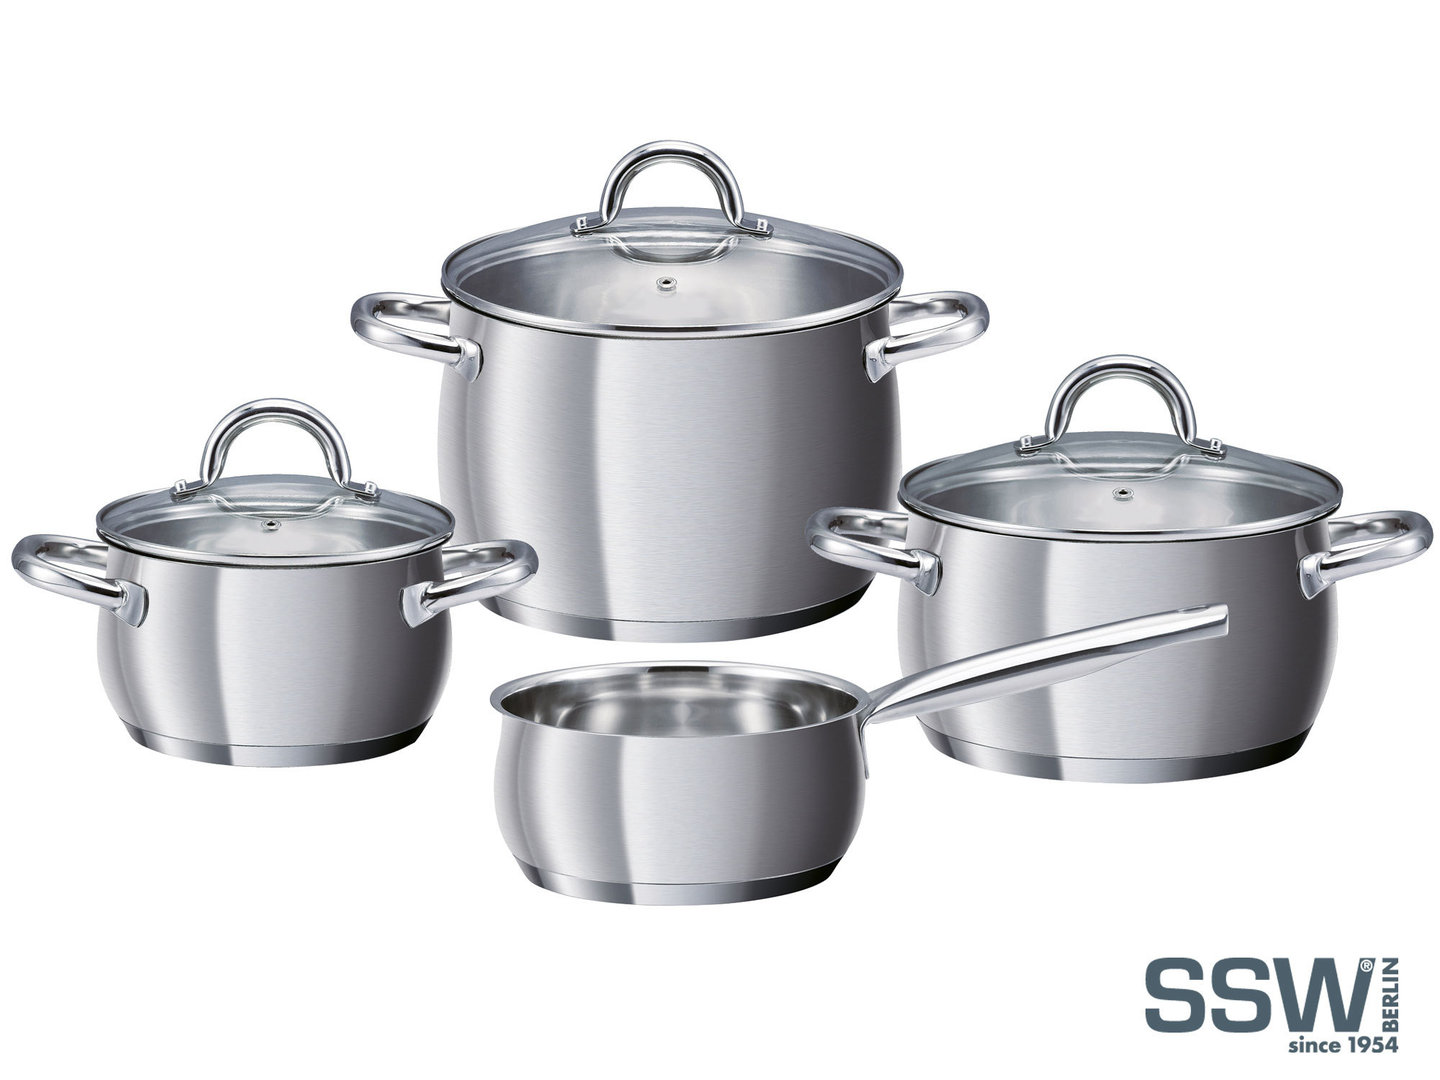 SSW casserole set LOLLO ROSSO stainless steel brushed